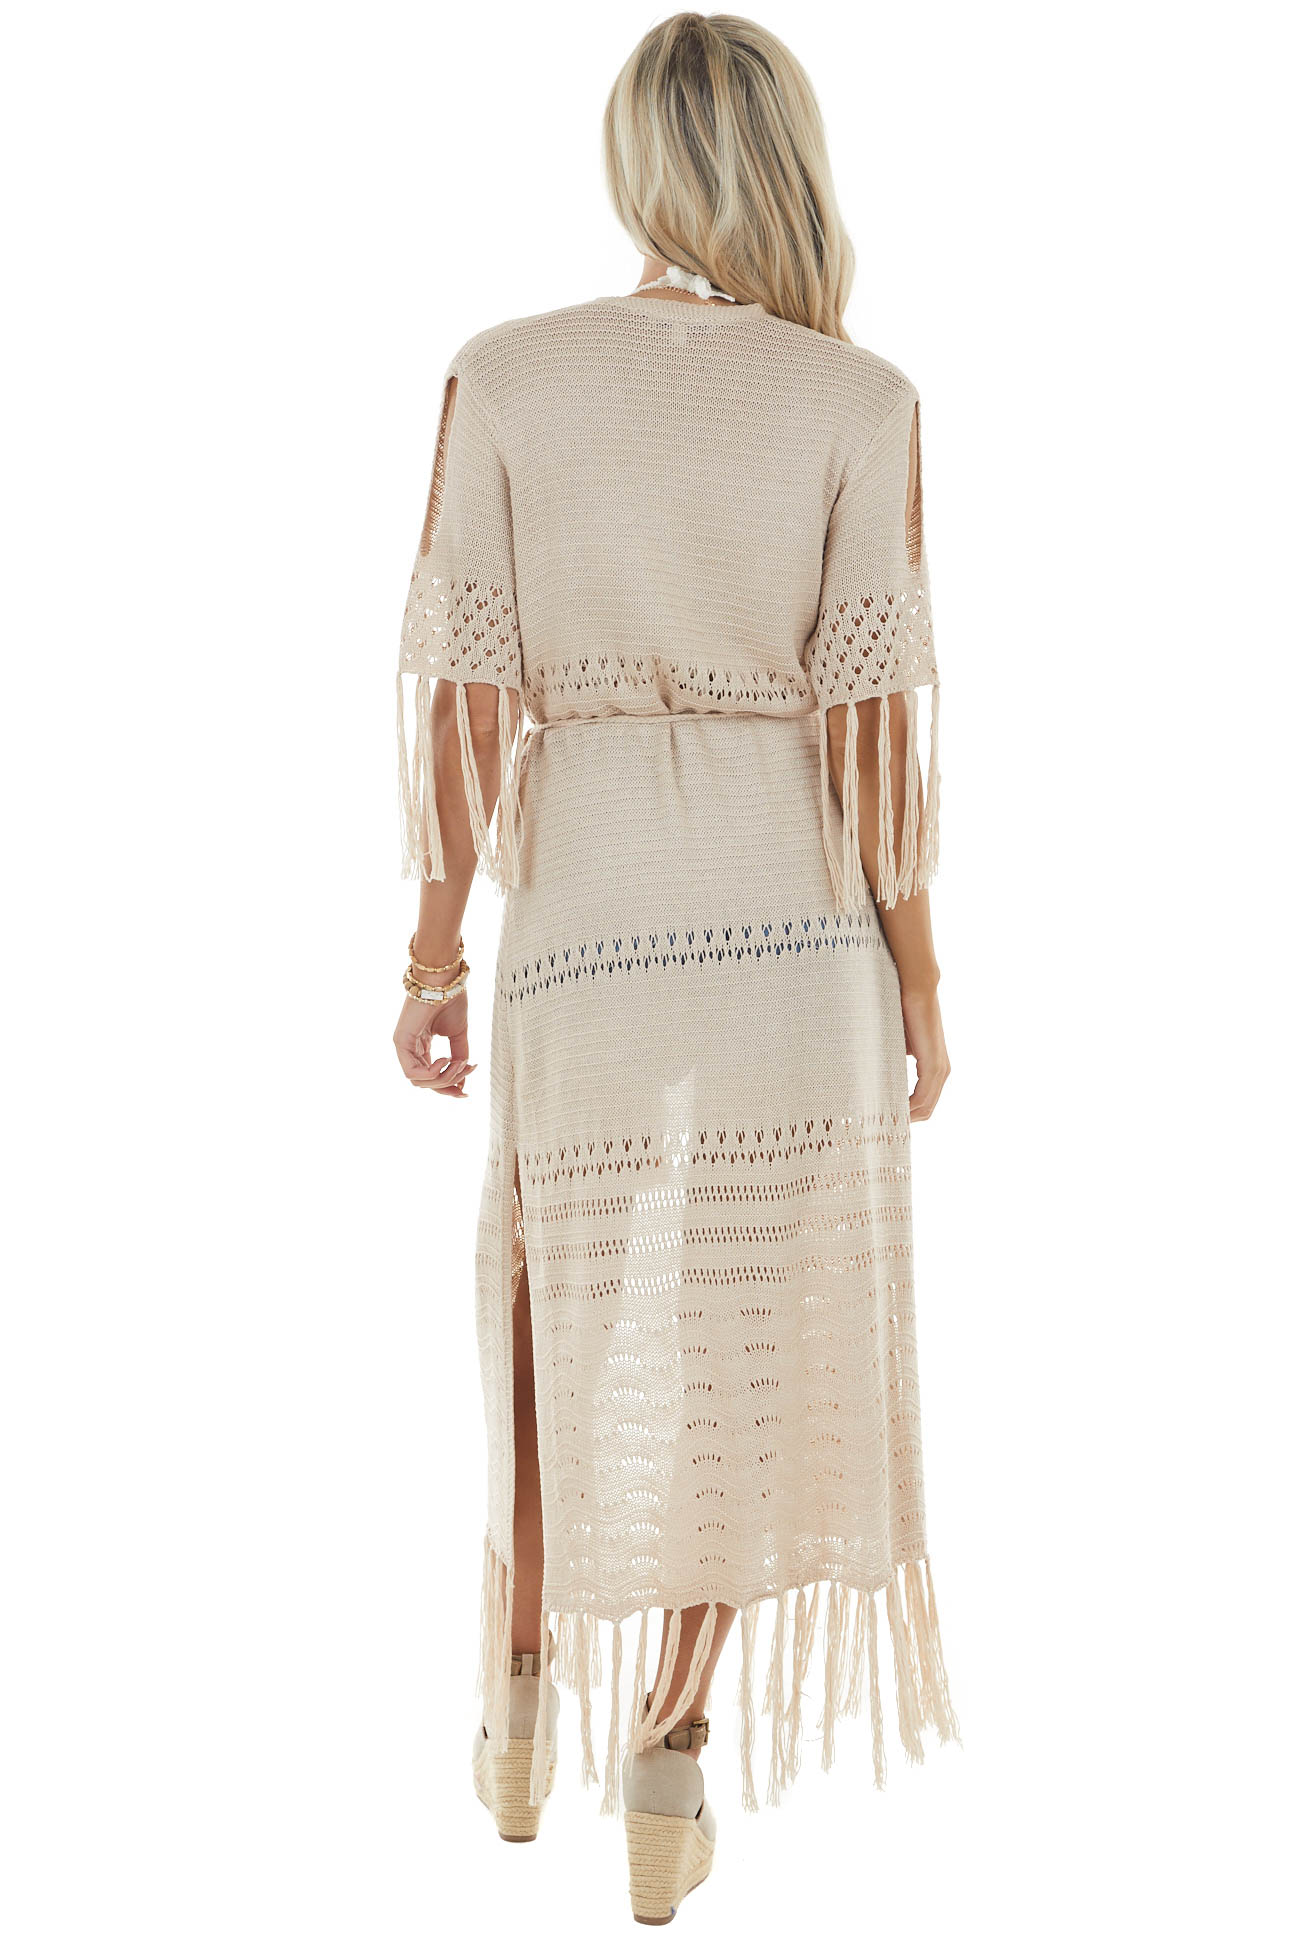 Nude Short Sleeve Long Loose Knit Cardigan with Waist Tie